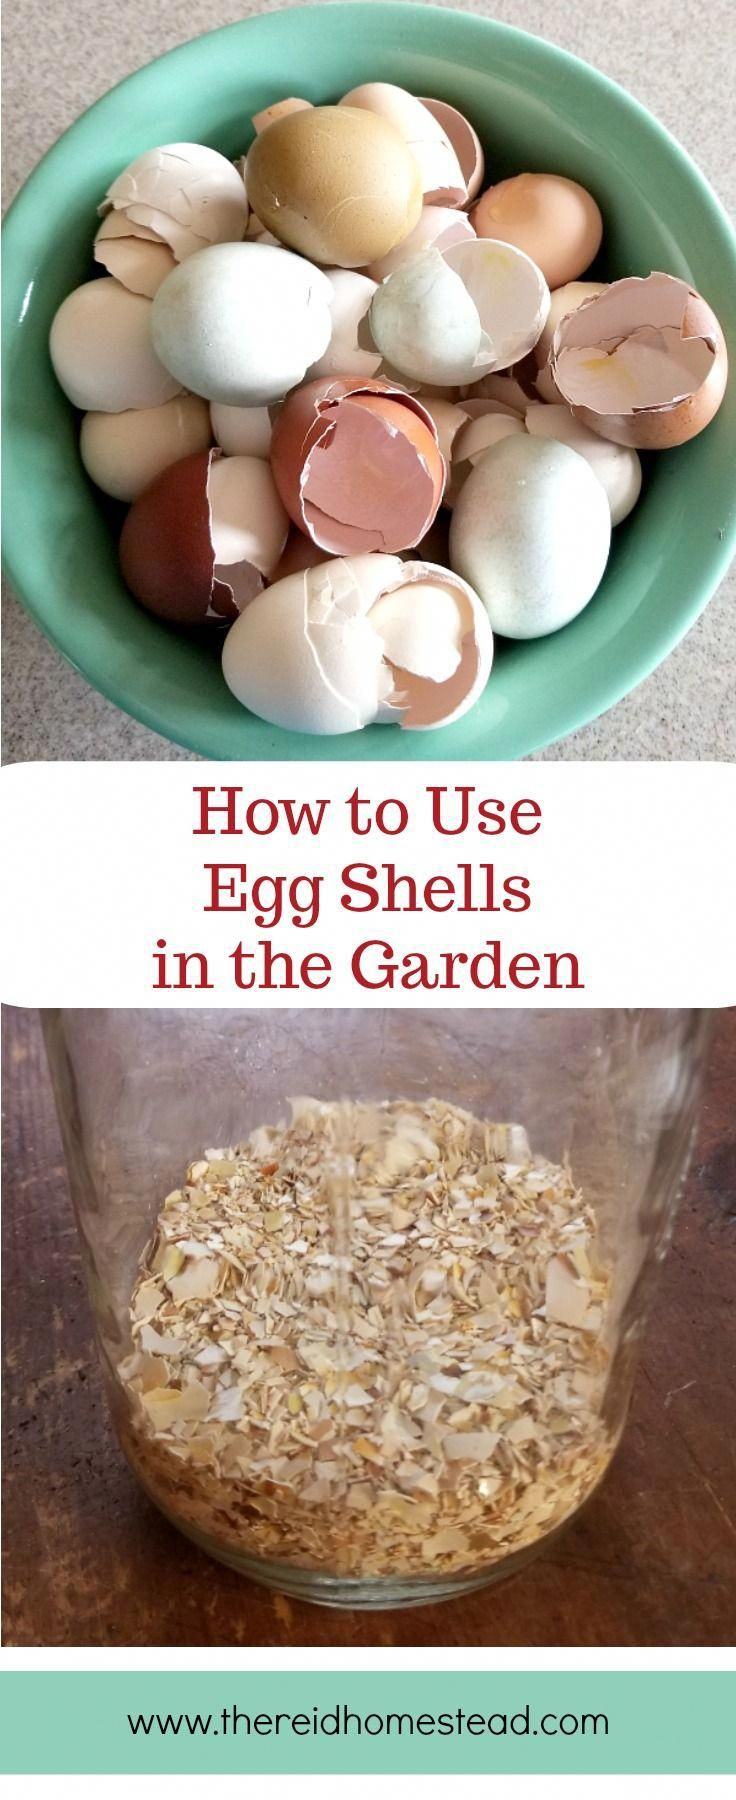 How To Use Egg Shells In The Garden Learn The Different Ways You Can Use Your Egg Shells To